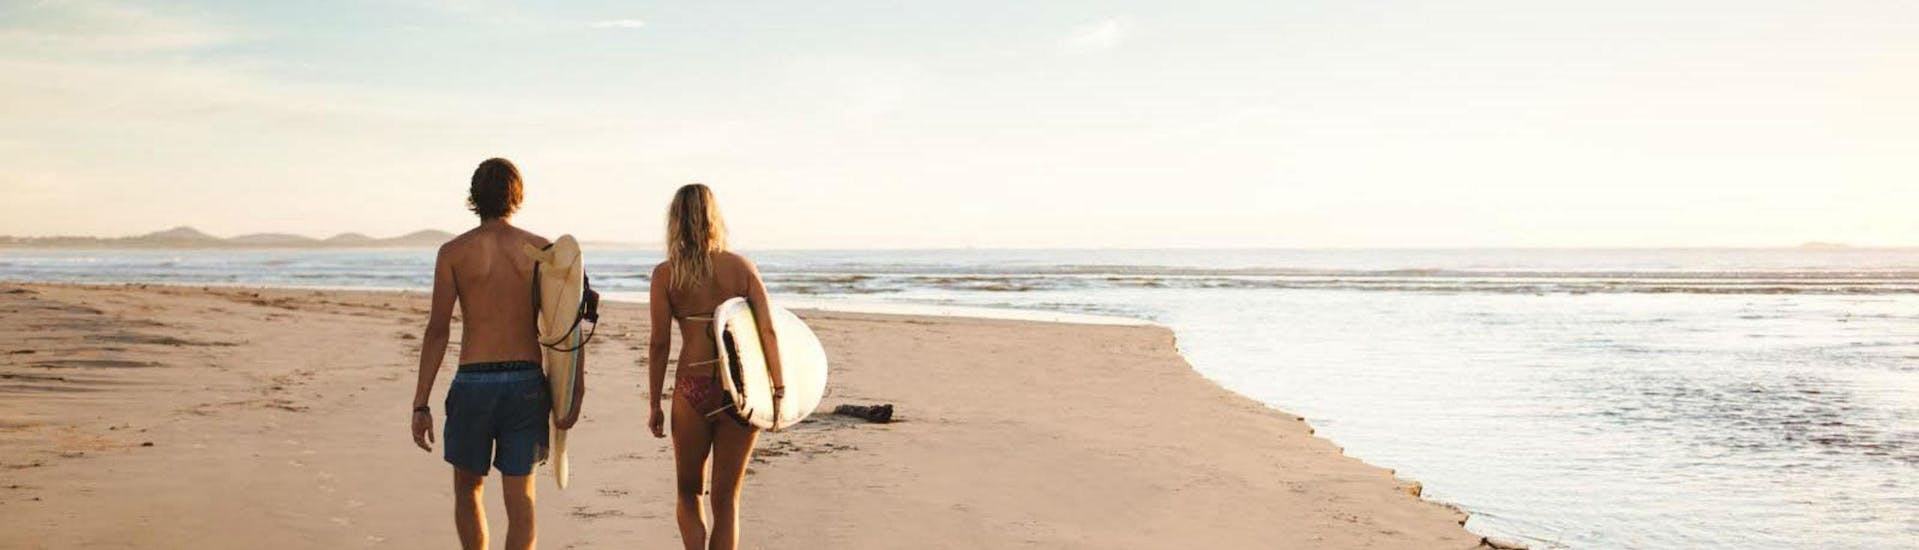 private-surf-lessons-in-ballina-and-lennox-head-mojosurf-hero